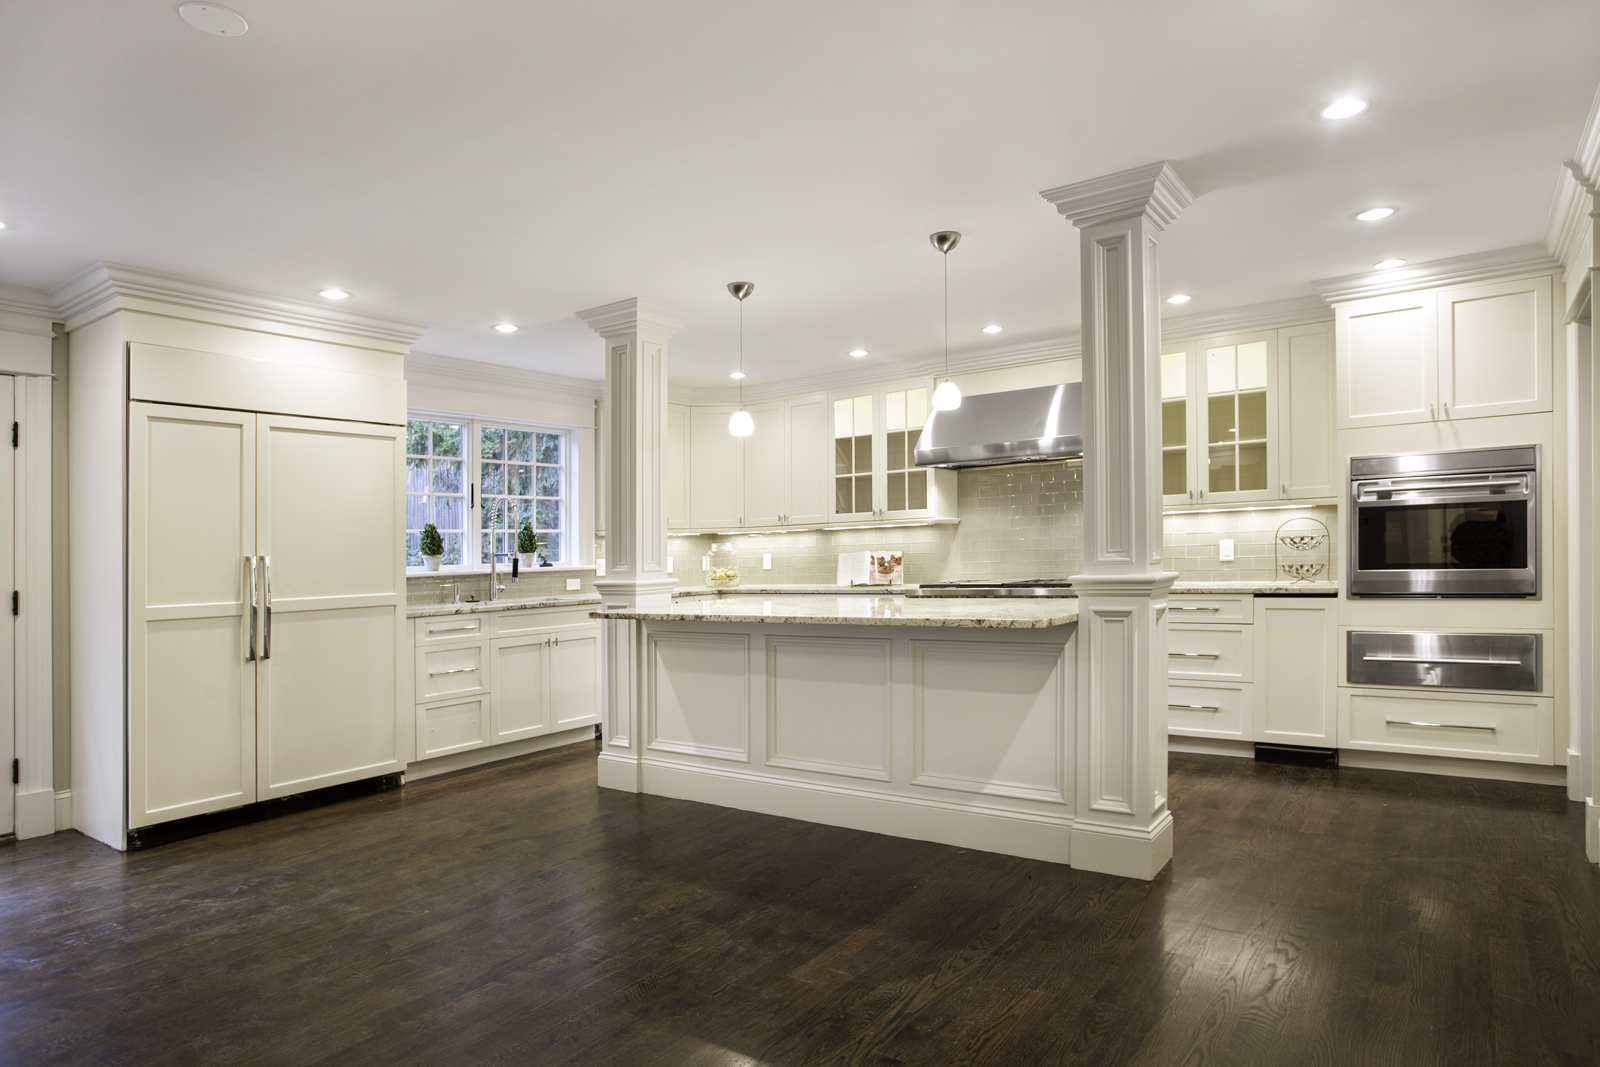 Kitchen Remodeling Kitchen And Bath Remodeling Project Gallery - Srb